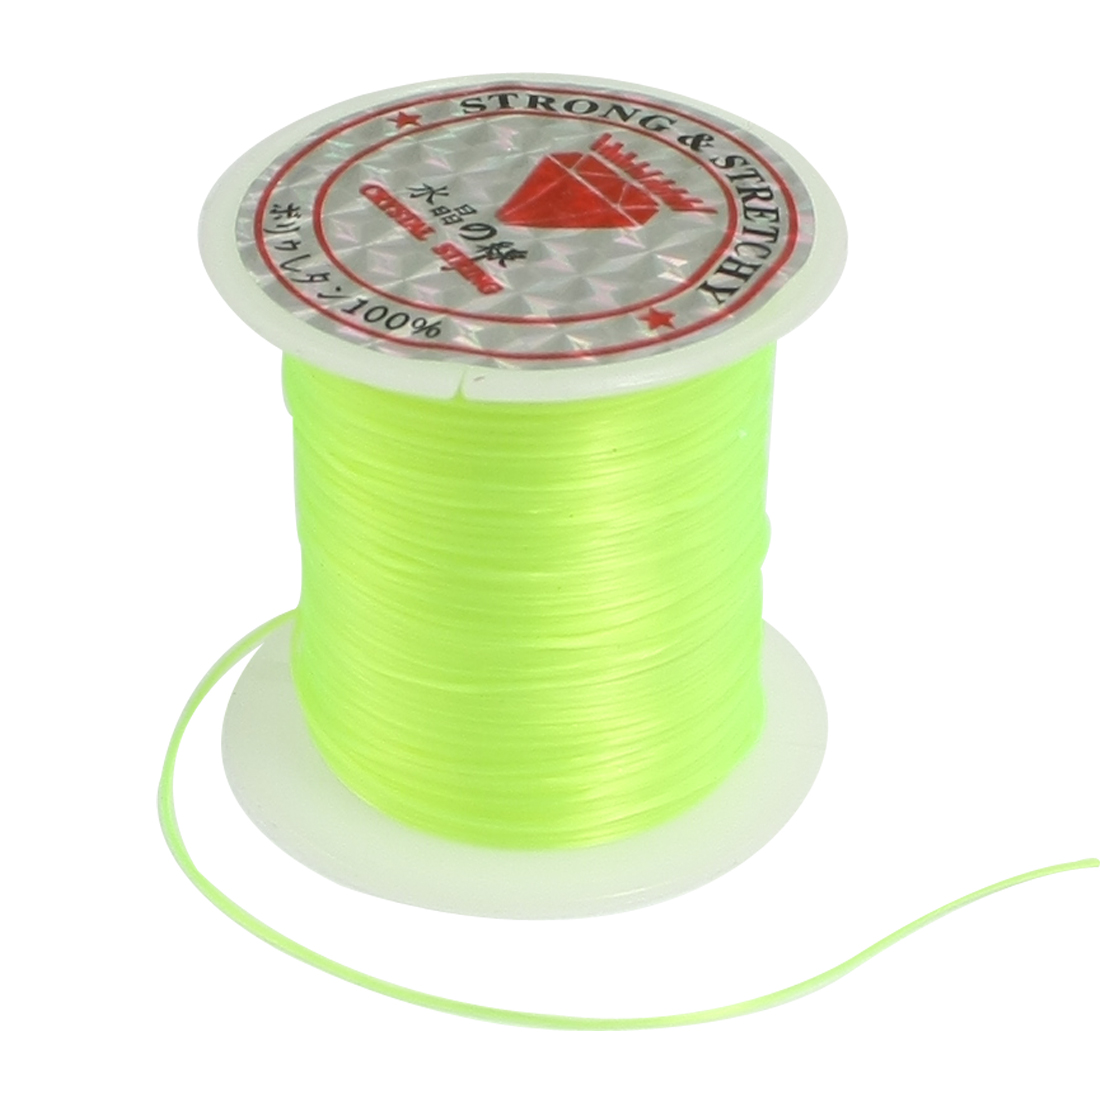 Unique Bargains Unique Bargains Yellowgreen Stretchy Crystal String Cord Jewelry Beading Thread Spool 9M 29.5 Ft